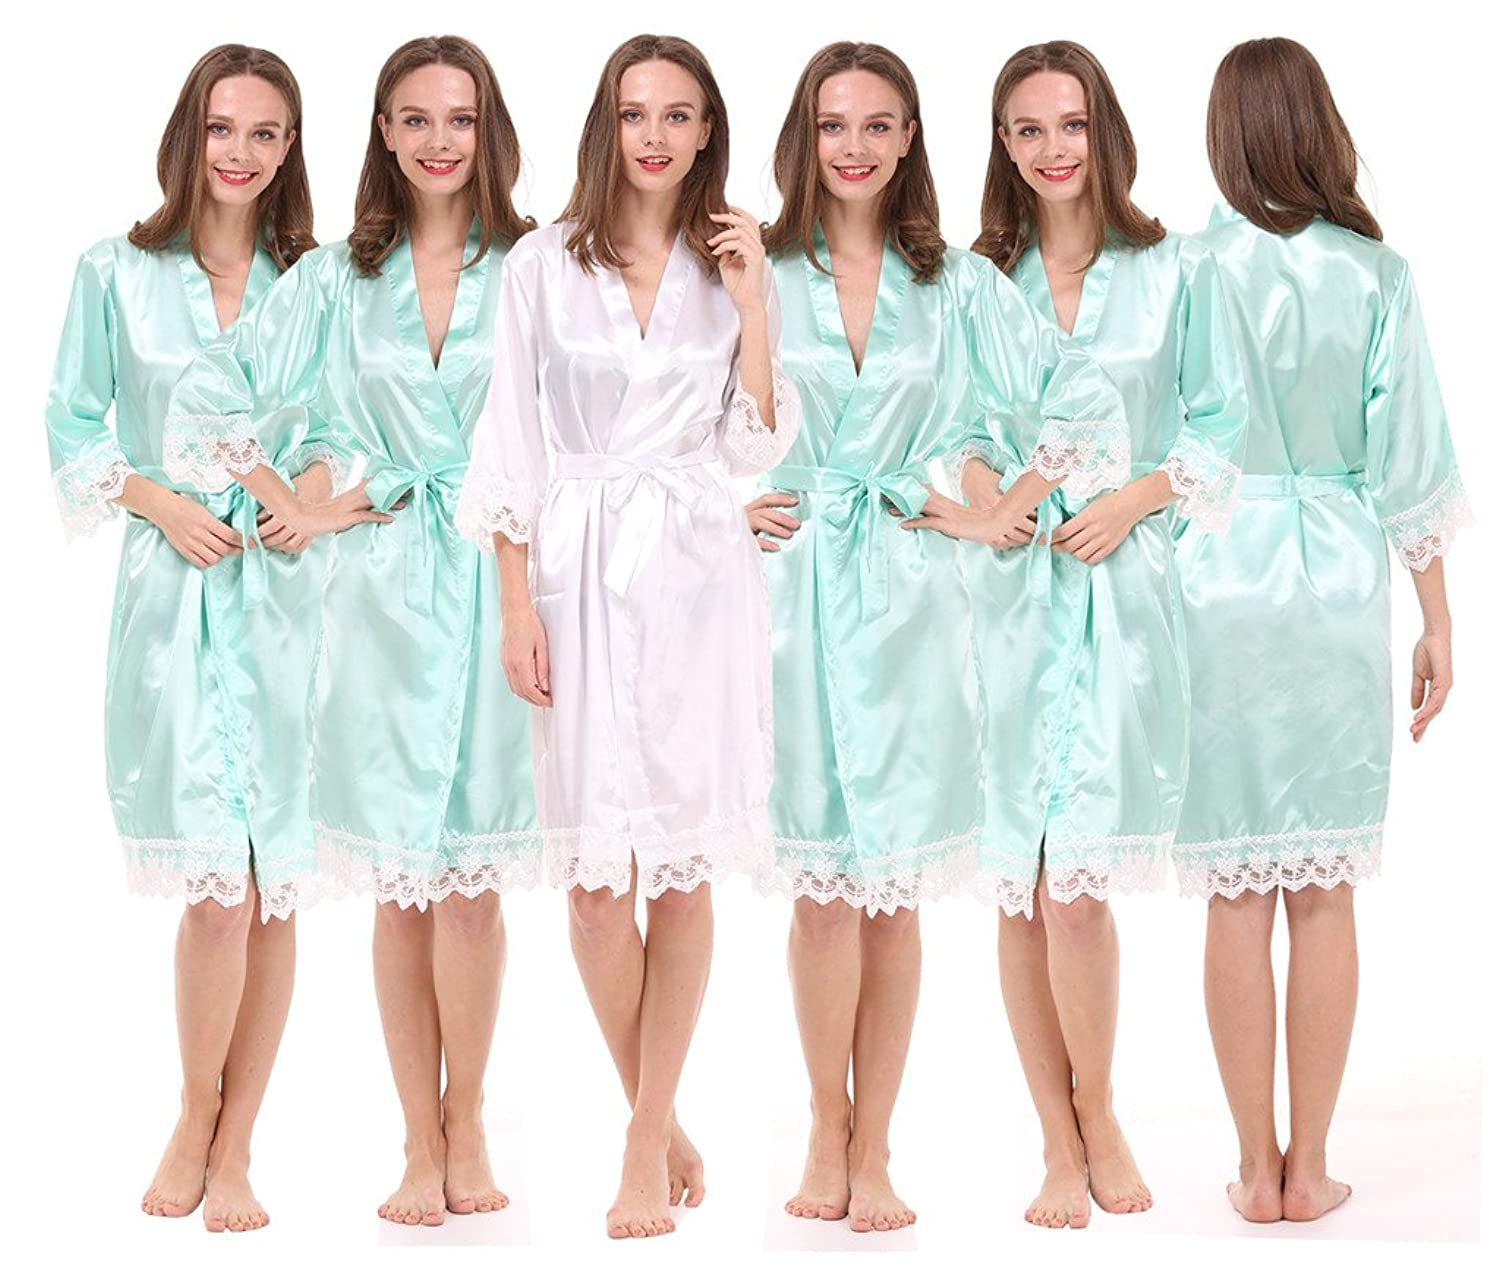 Set of 6 Women's Satin Robes for Bride and Bridesmaid with Lace Trim